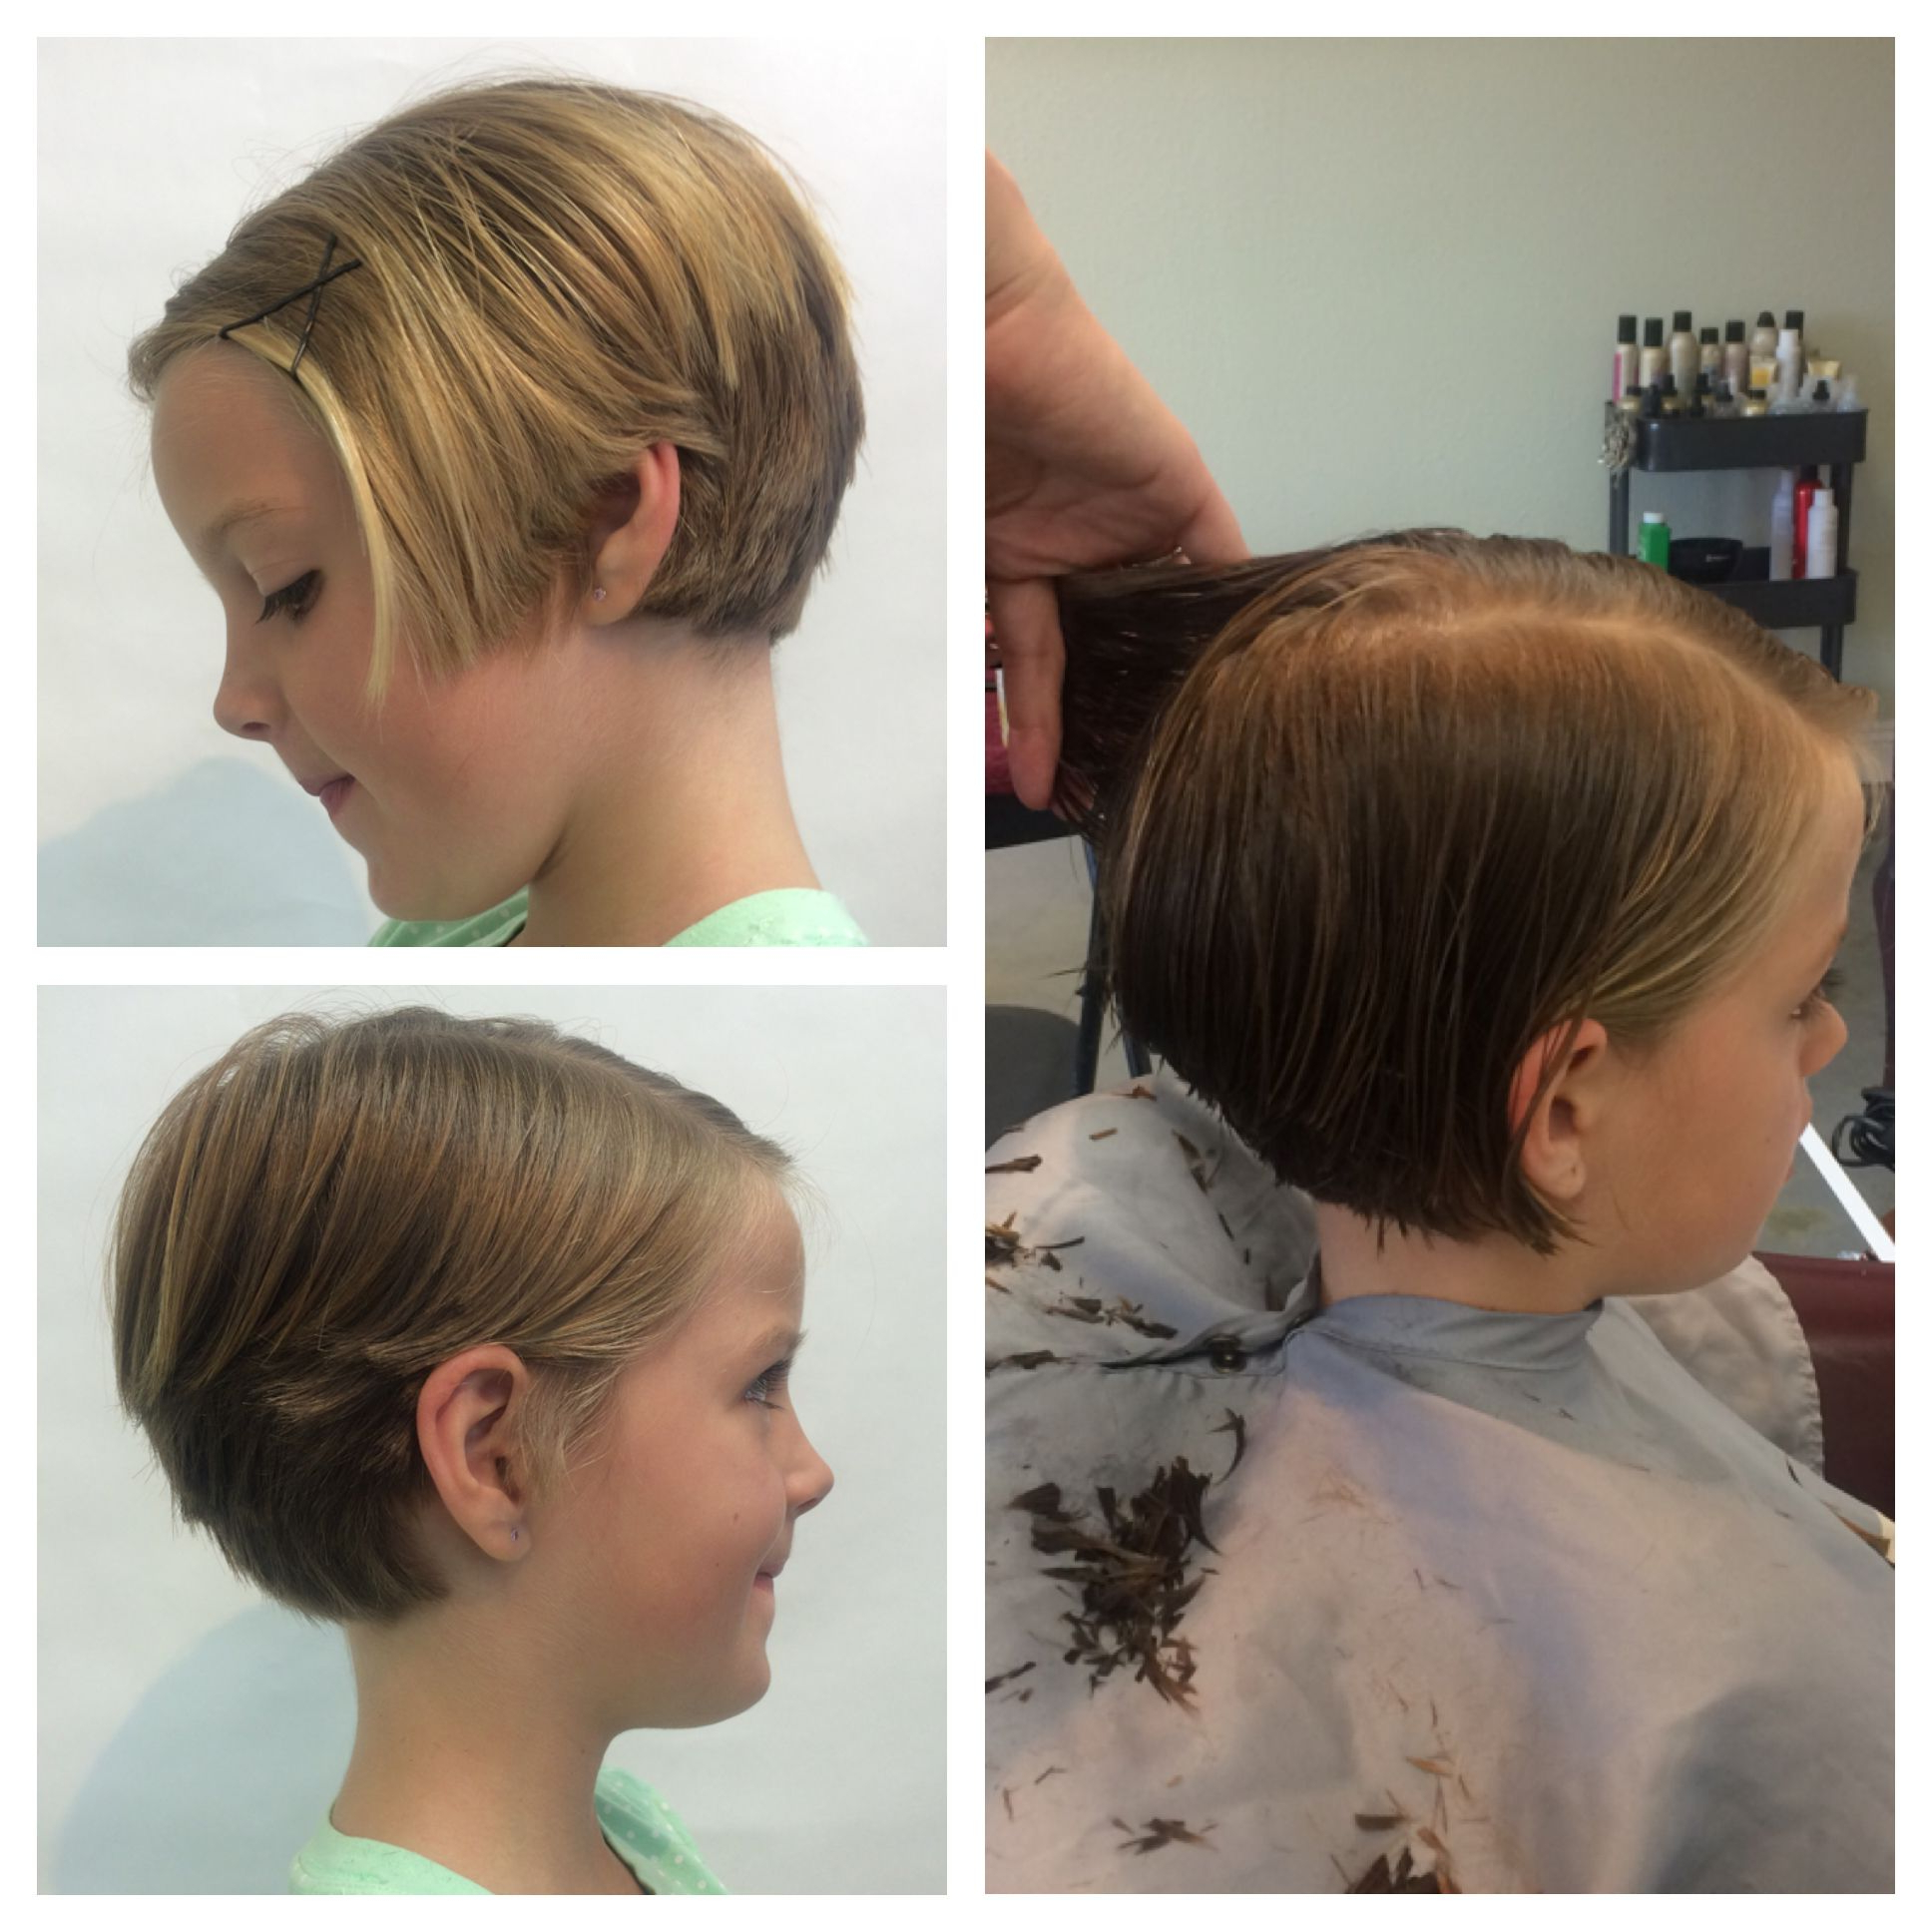 Child Pixie Hair Cut Girls Pixie Hairstyle Cute Short Hairnicole Pertaining To Pixie Short Bob Haircuts (View 12 of 20)